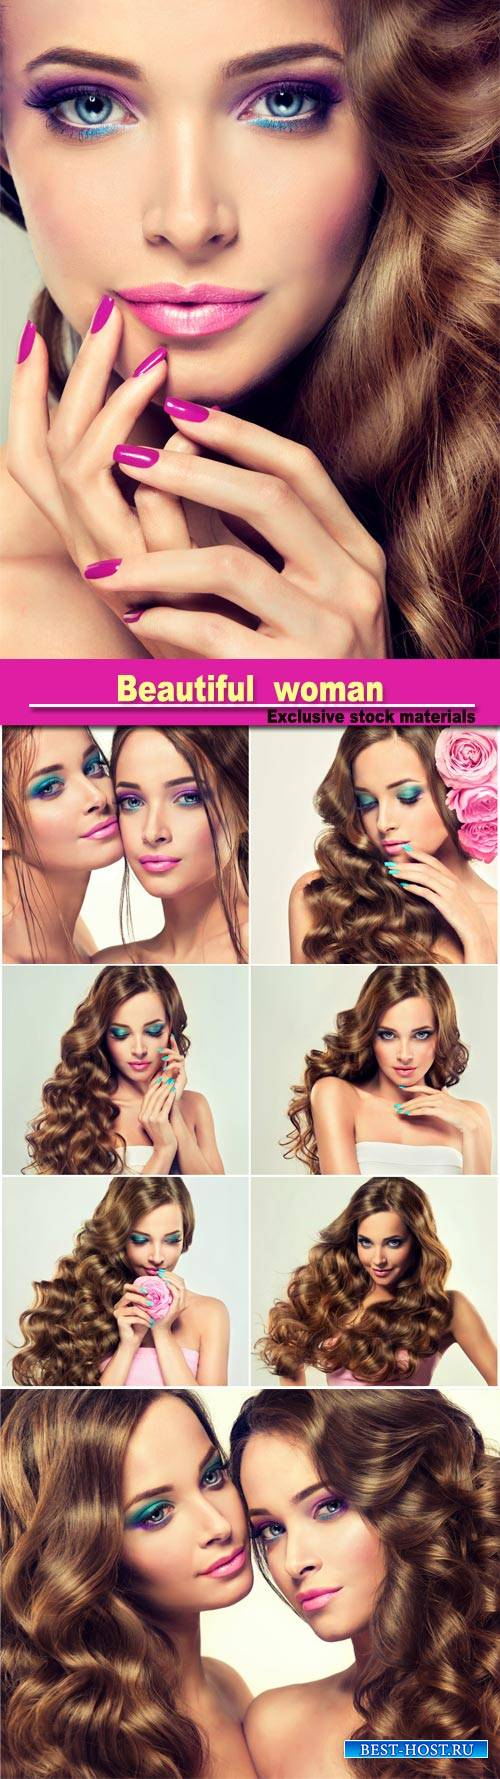 Portrait of young models, with lush hair, perfect violet makeup and pink ma ...